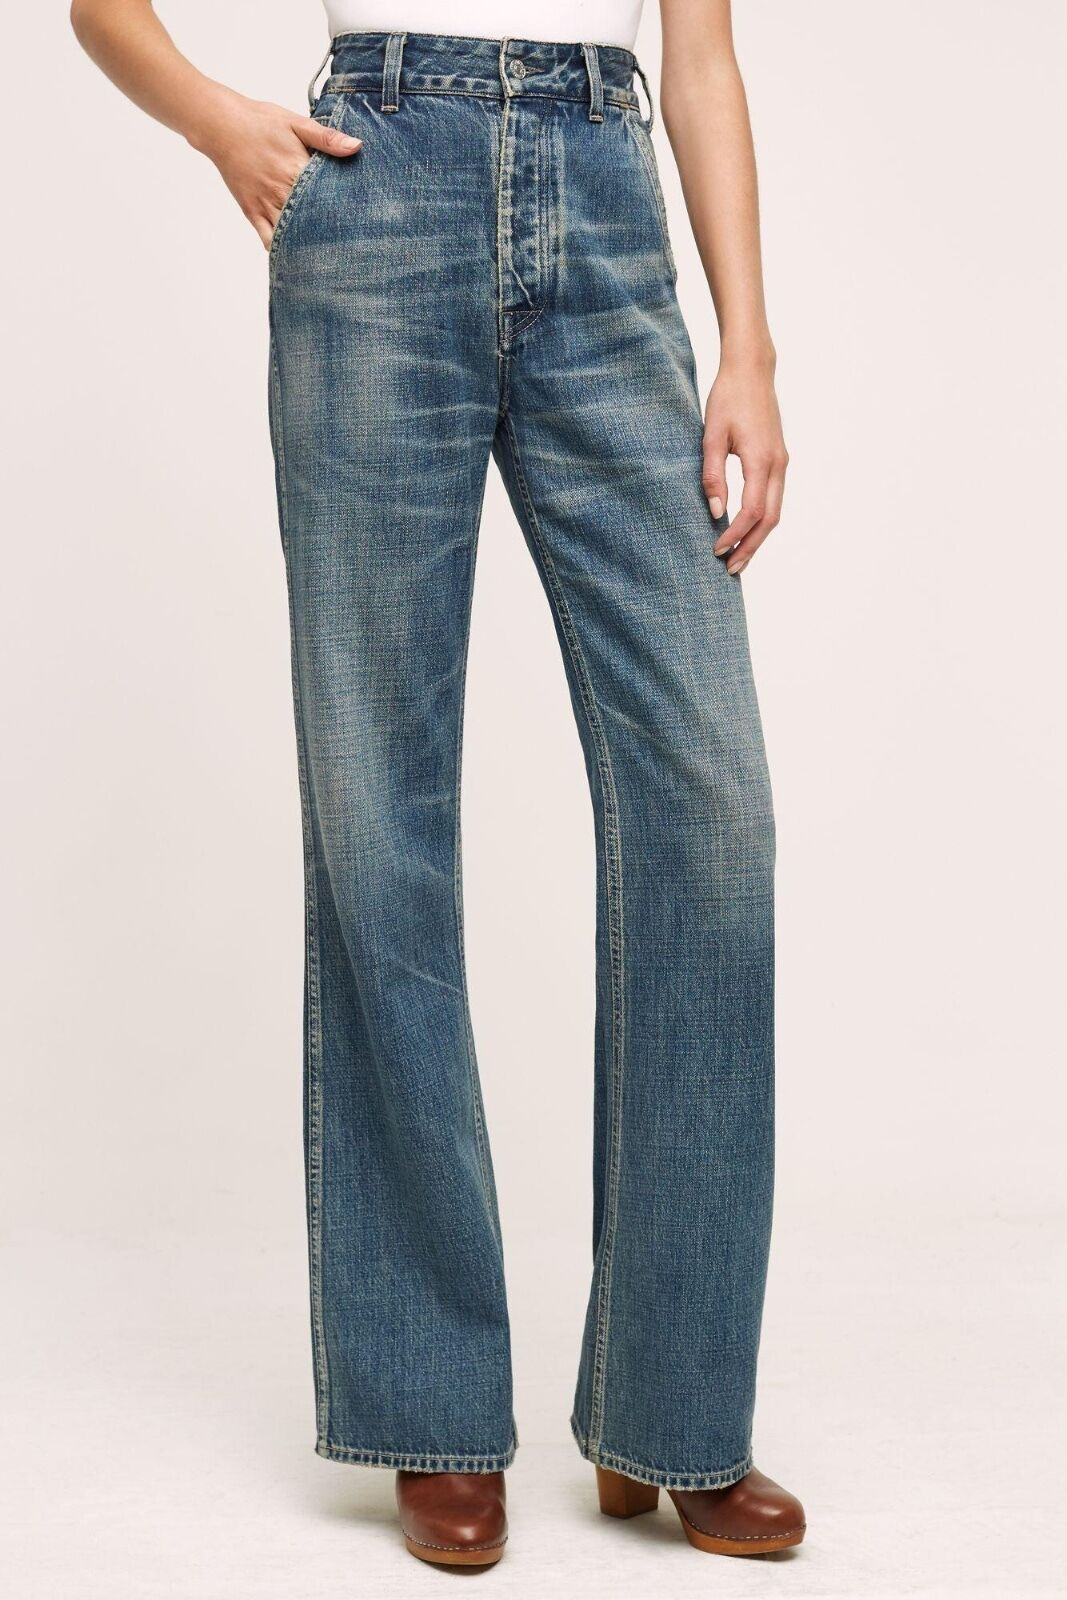 NWT NEW Anthropologie Citizens of Humanity Irina Ultra High-Rise Flare Jeans